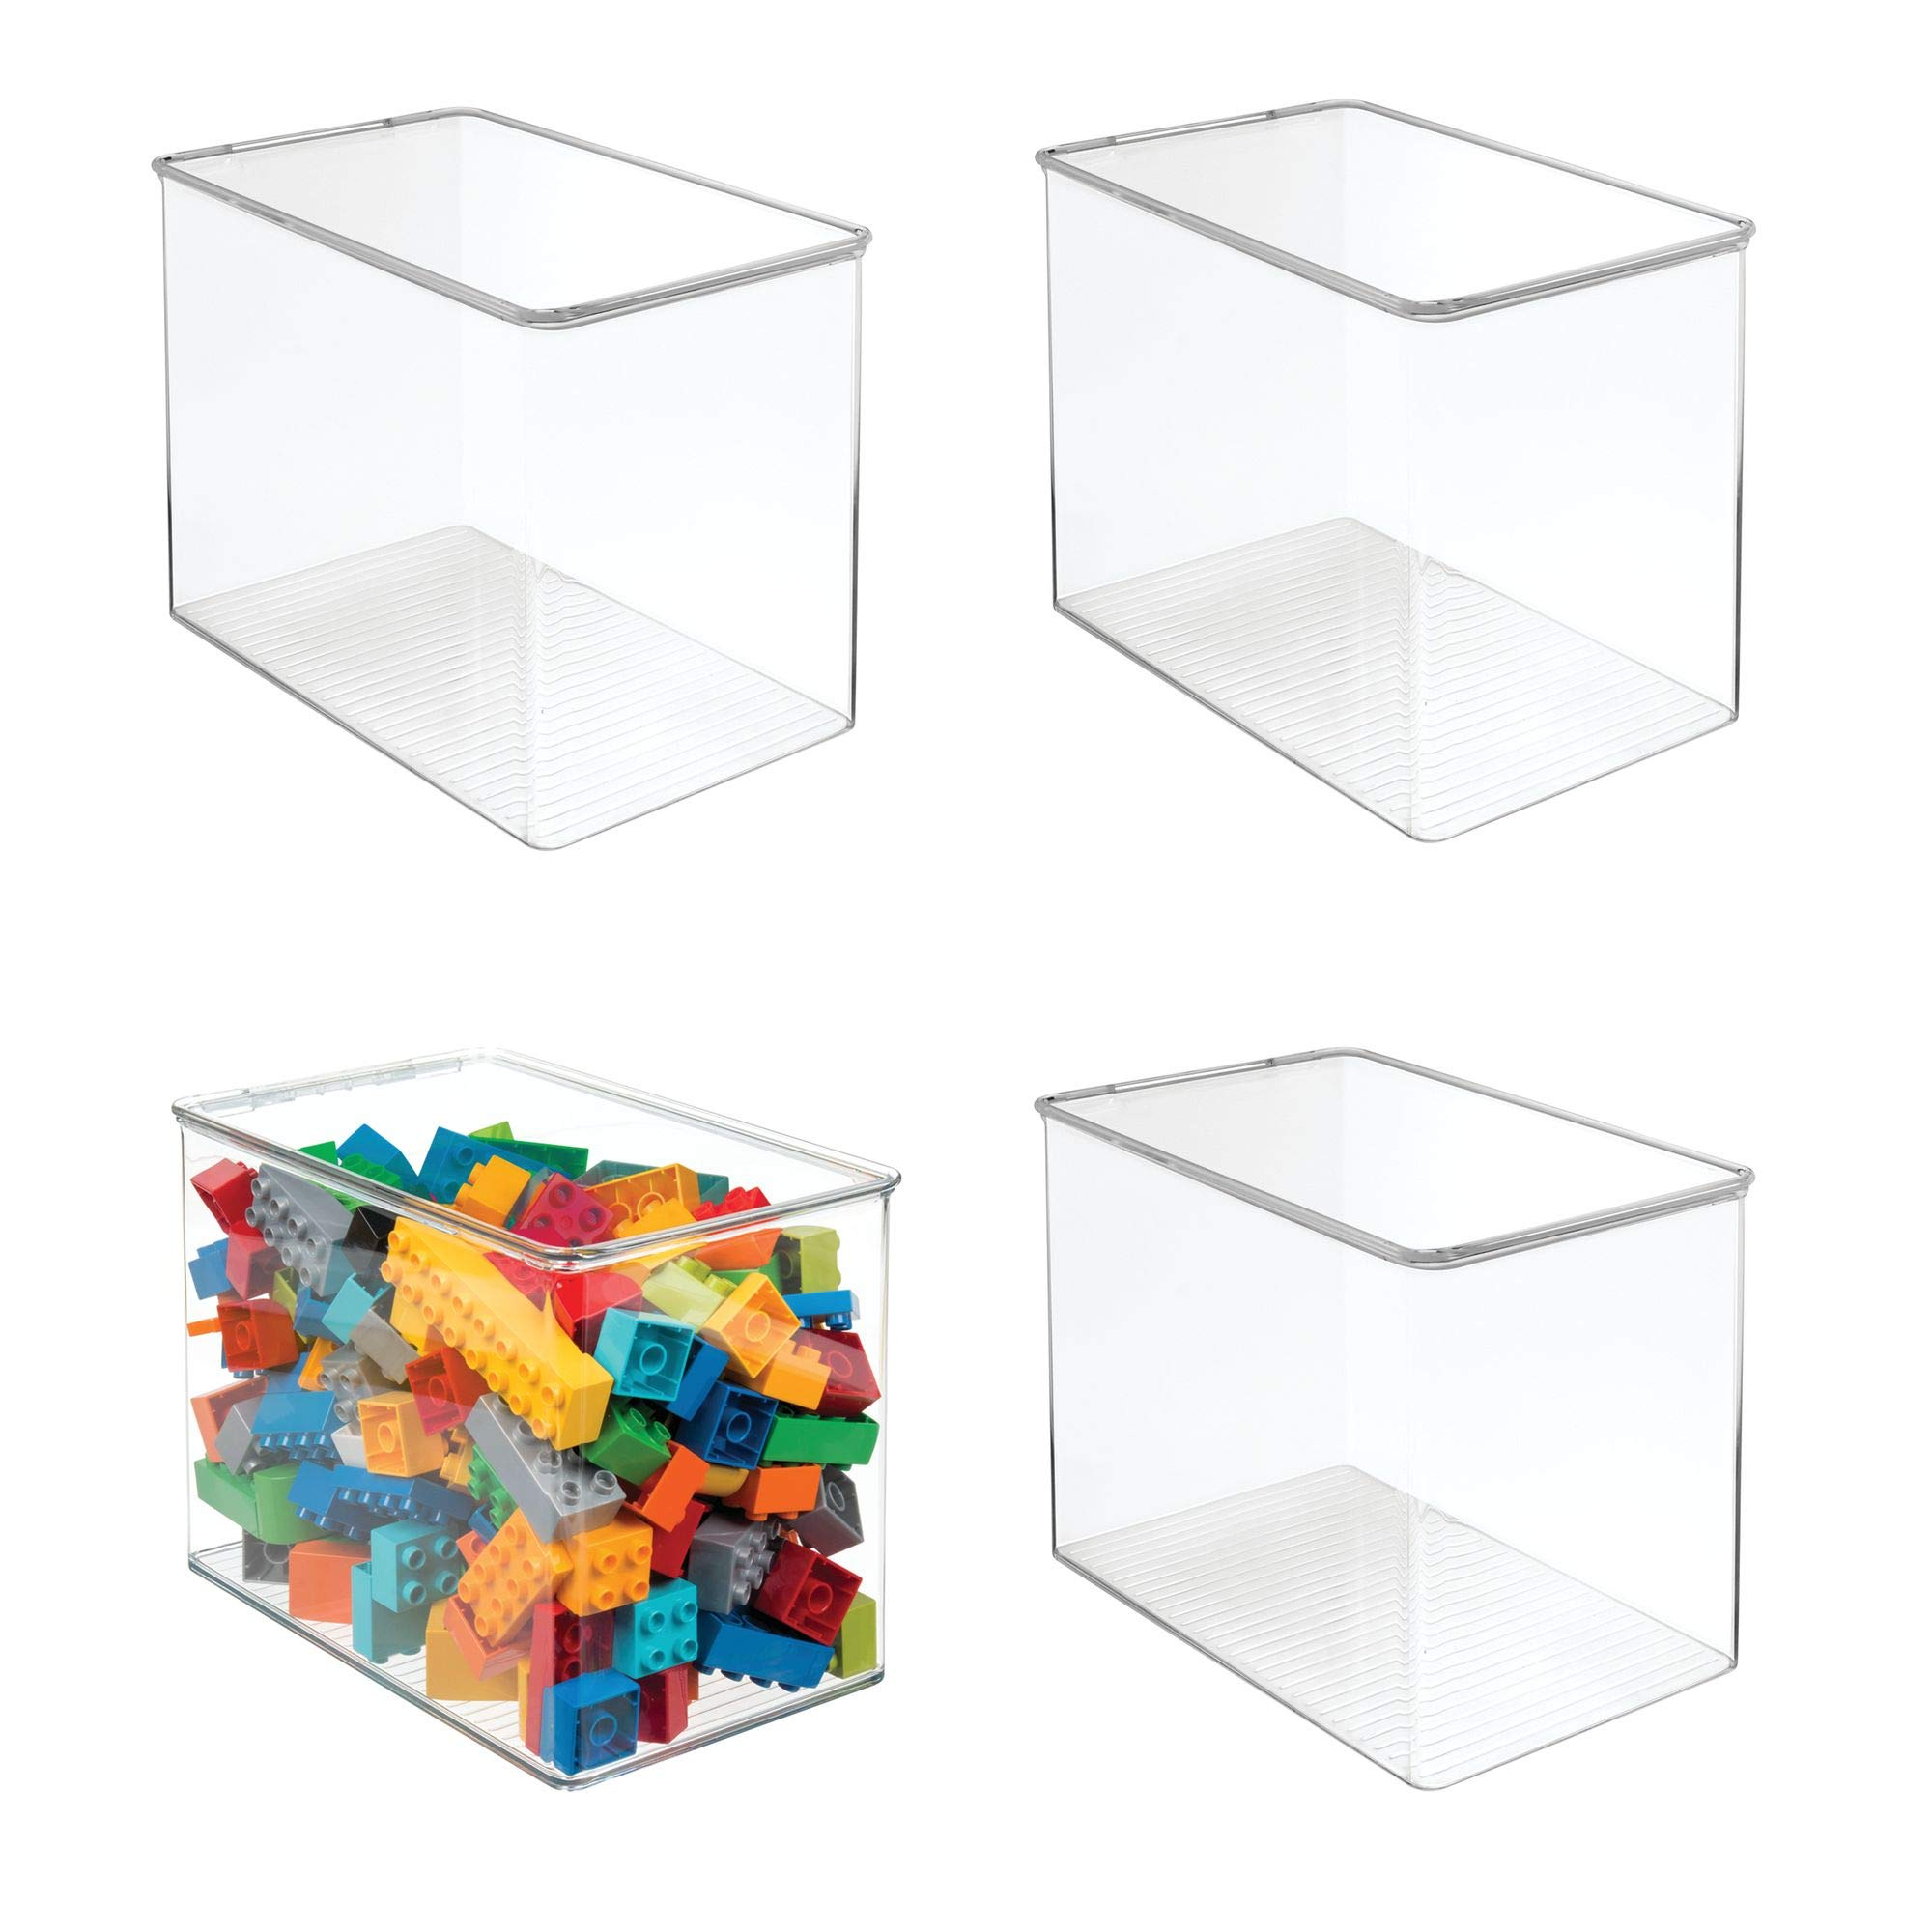 mDesign Kids Baby Cat Dog Small Plastic Stacking Toy Storage Organizers Boxes Cases Containers with lid , for Action Figures, Crayons, Legos Puzzles Wood Blocks - Set of 4, Tall, Clear